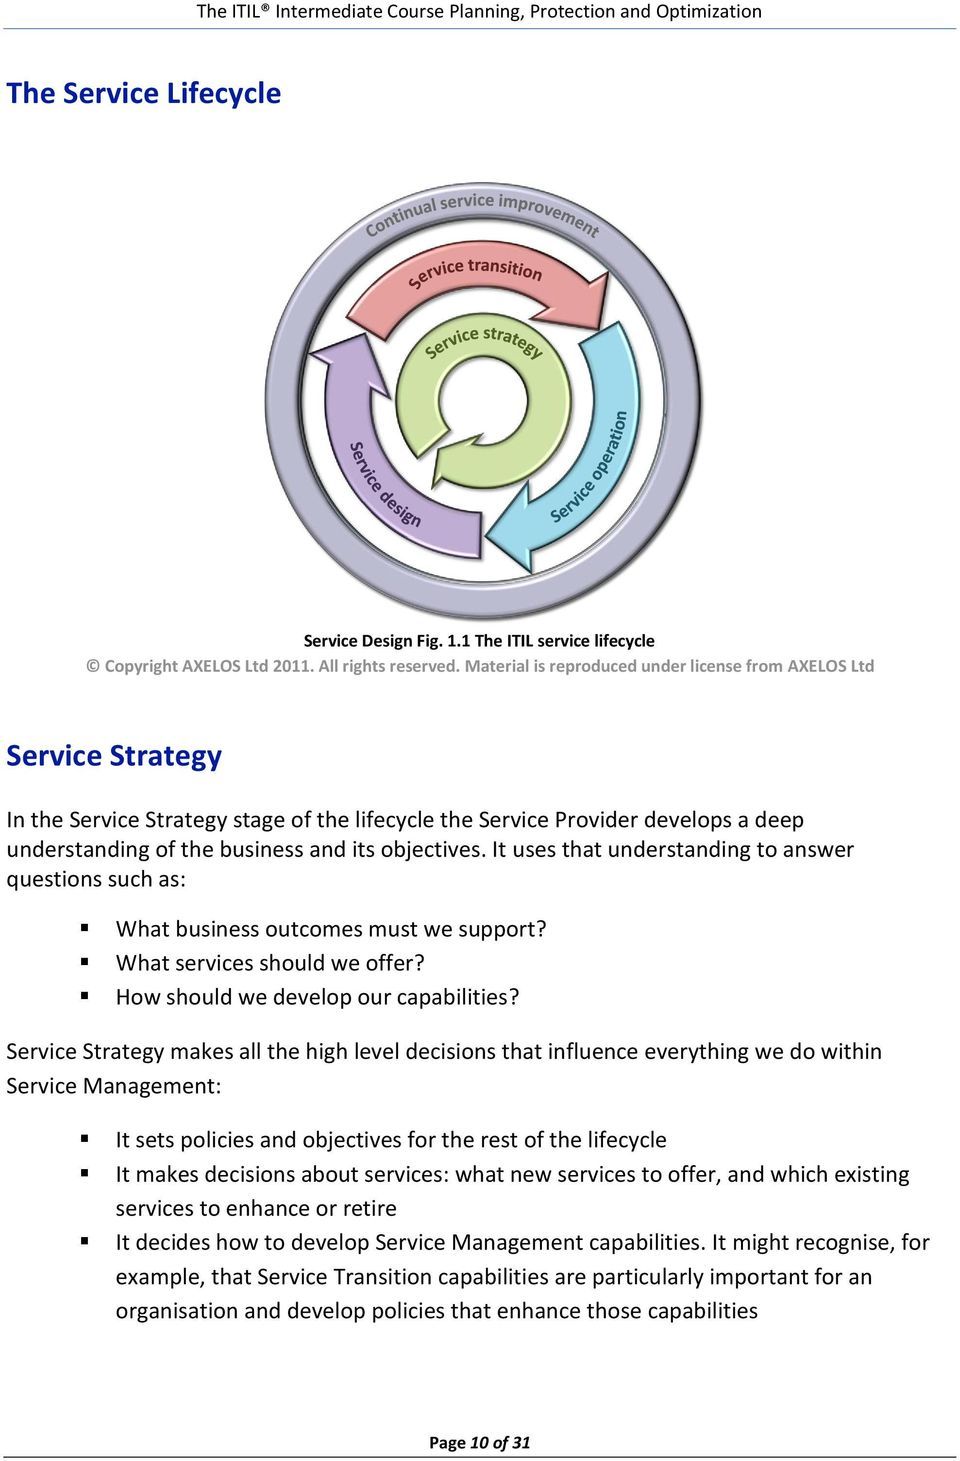 objectives. It uses that understanding to answer questions such as: What business outcomes must we support? What services should we offer? How should we develop our capabilities?